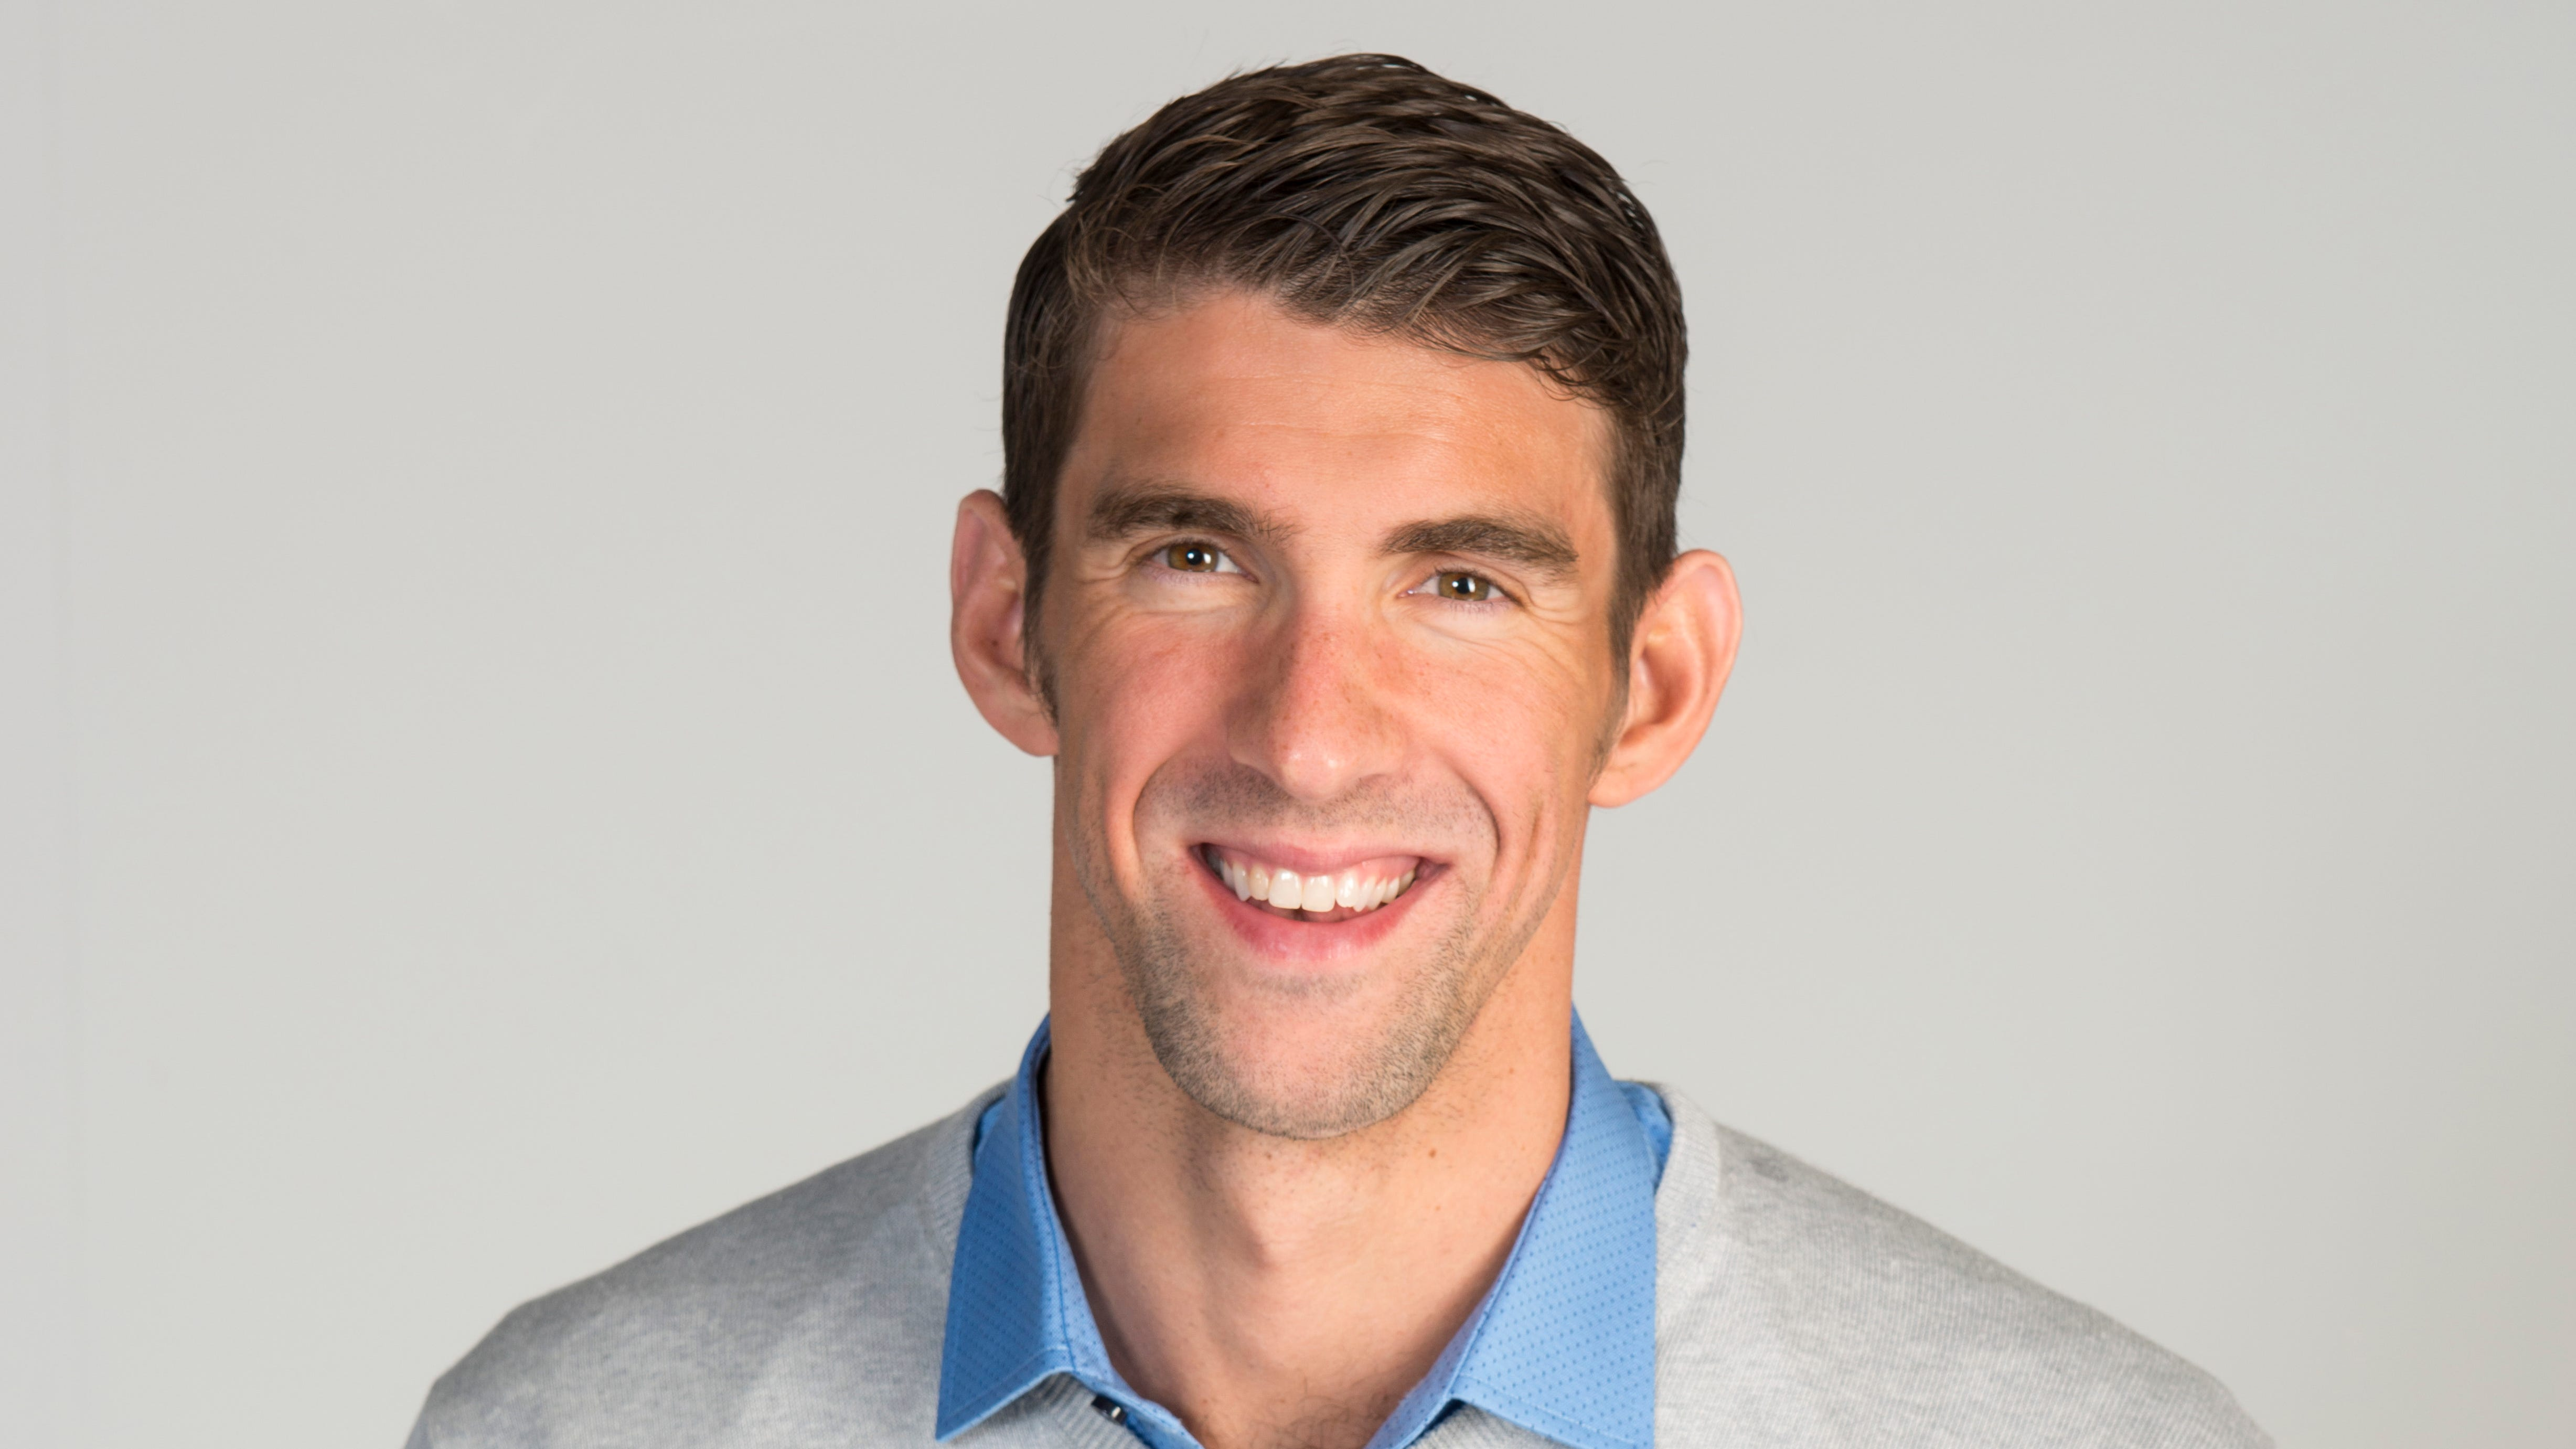 Olympic champion swimmer Michael Phelps will be the featured speaker at the May 8 Wisconsin High School Sports Awards show. The event will be held at the Fox Cities Performing Arts Center in Appleton.